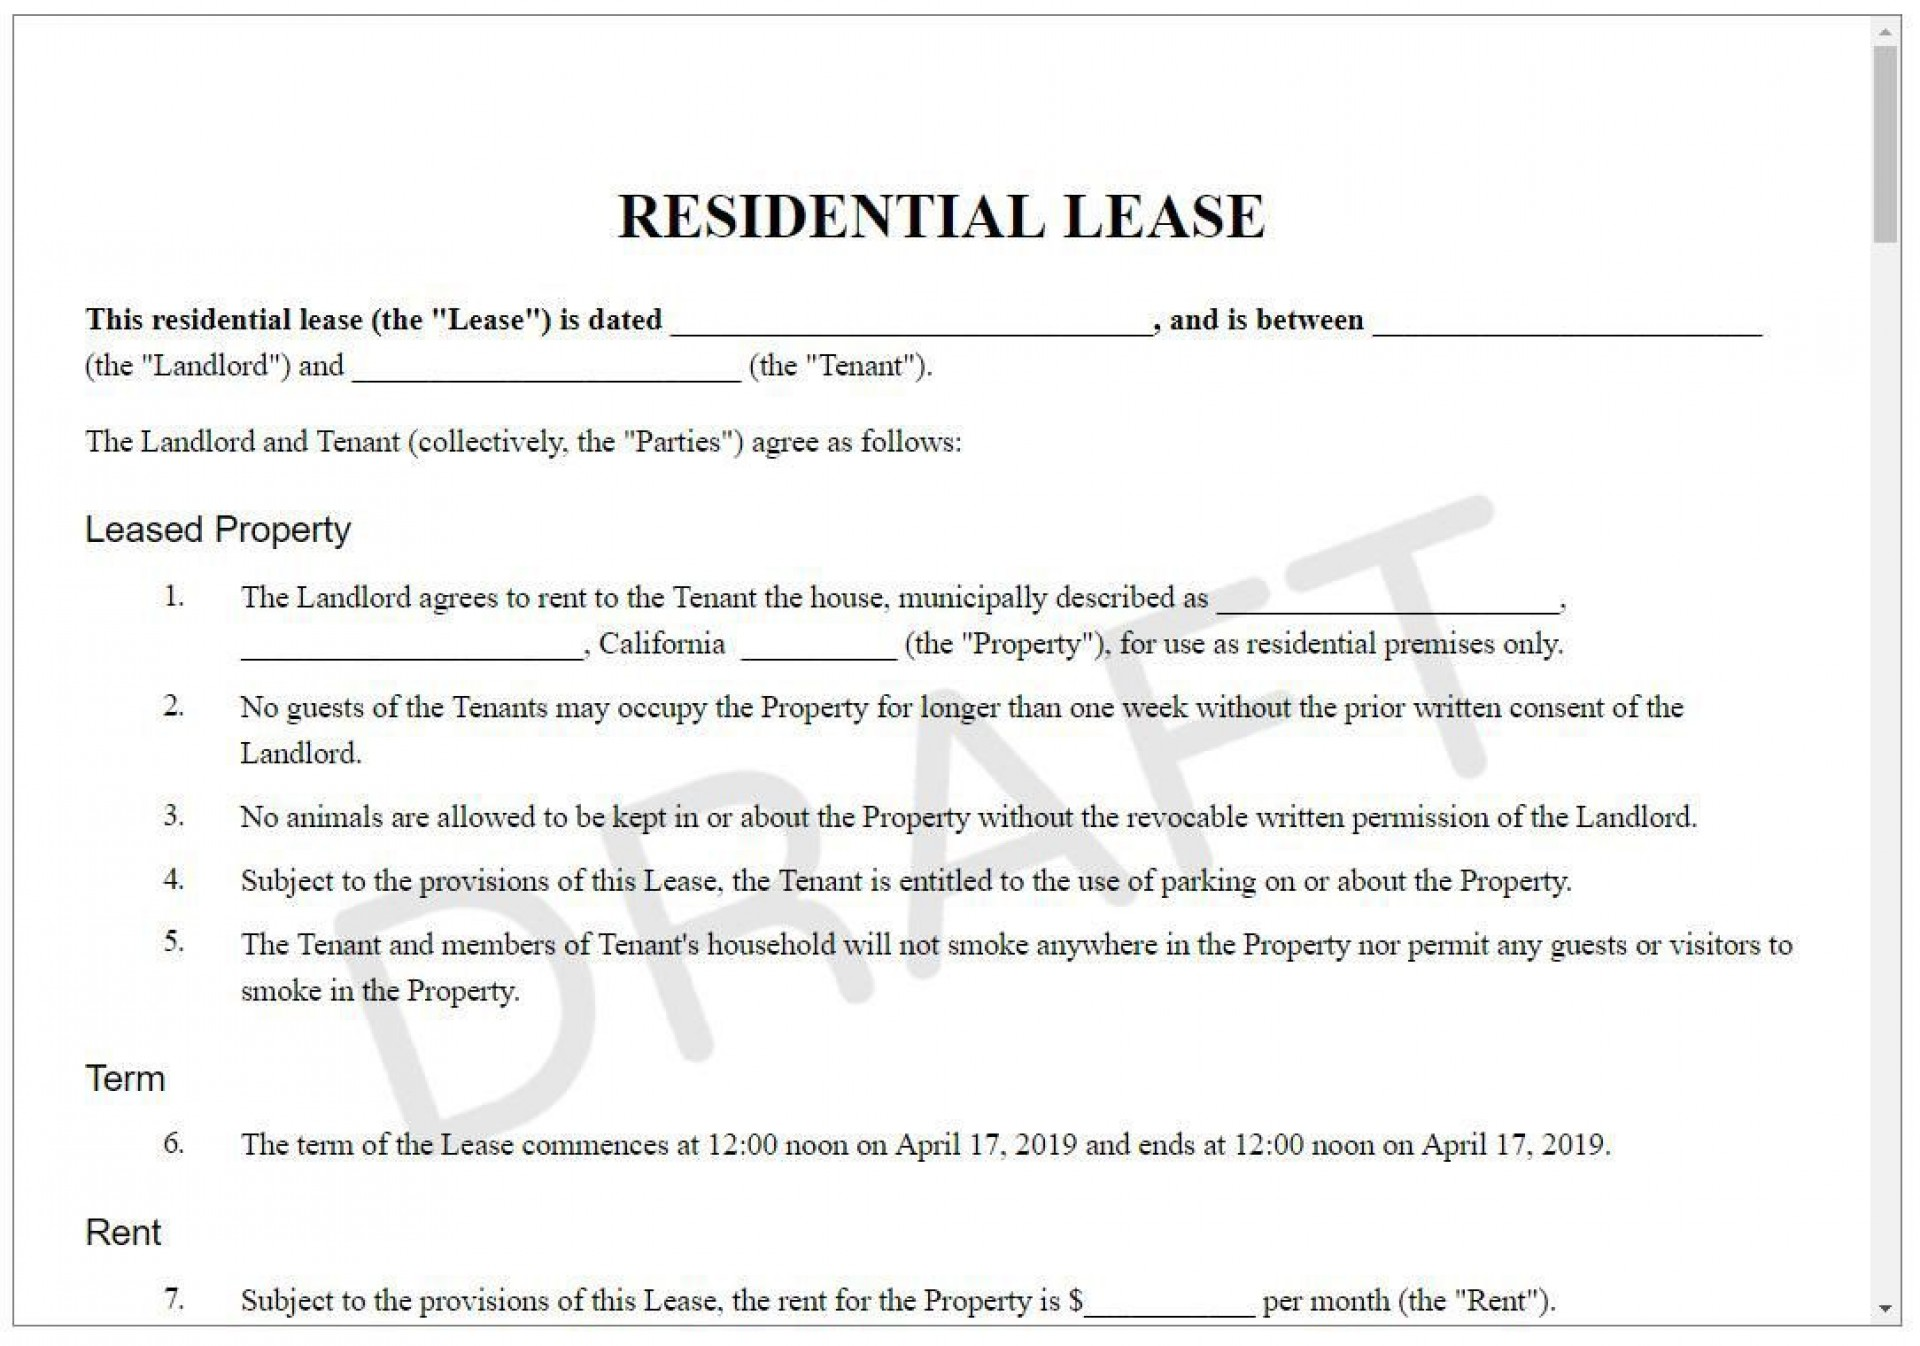 004 Best Apartment Rental Agreement Form Photo  Forms Lease Ontario Format Simple1920